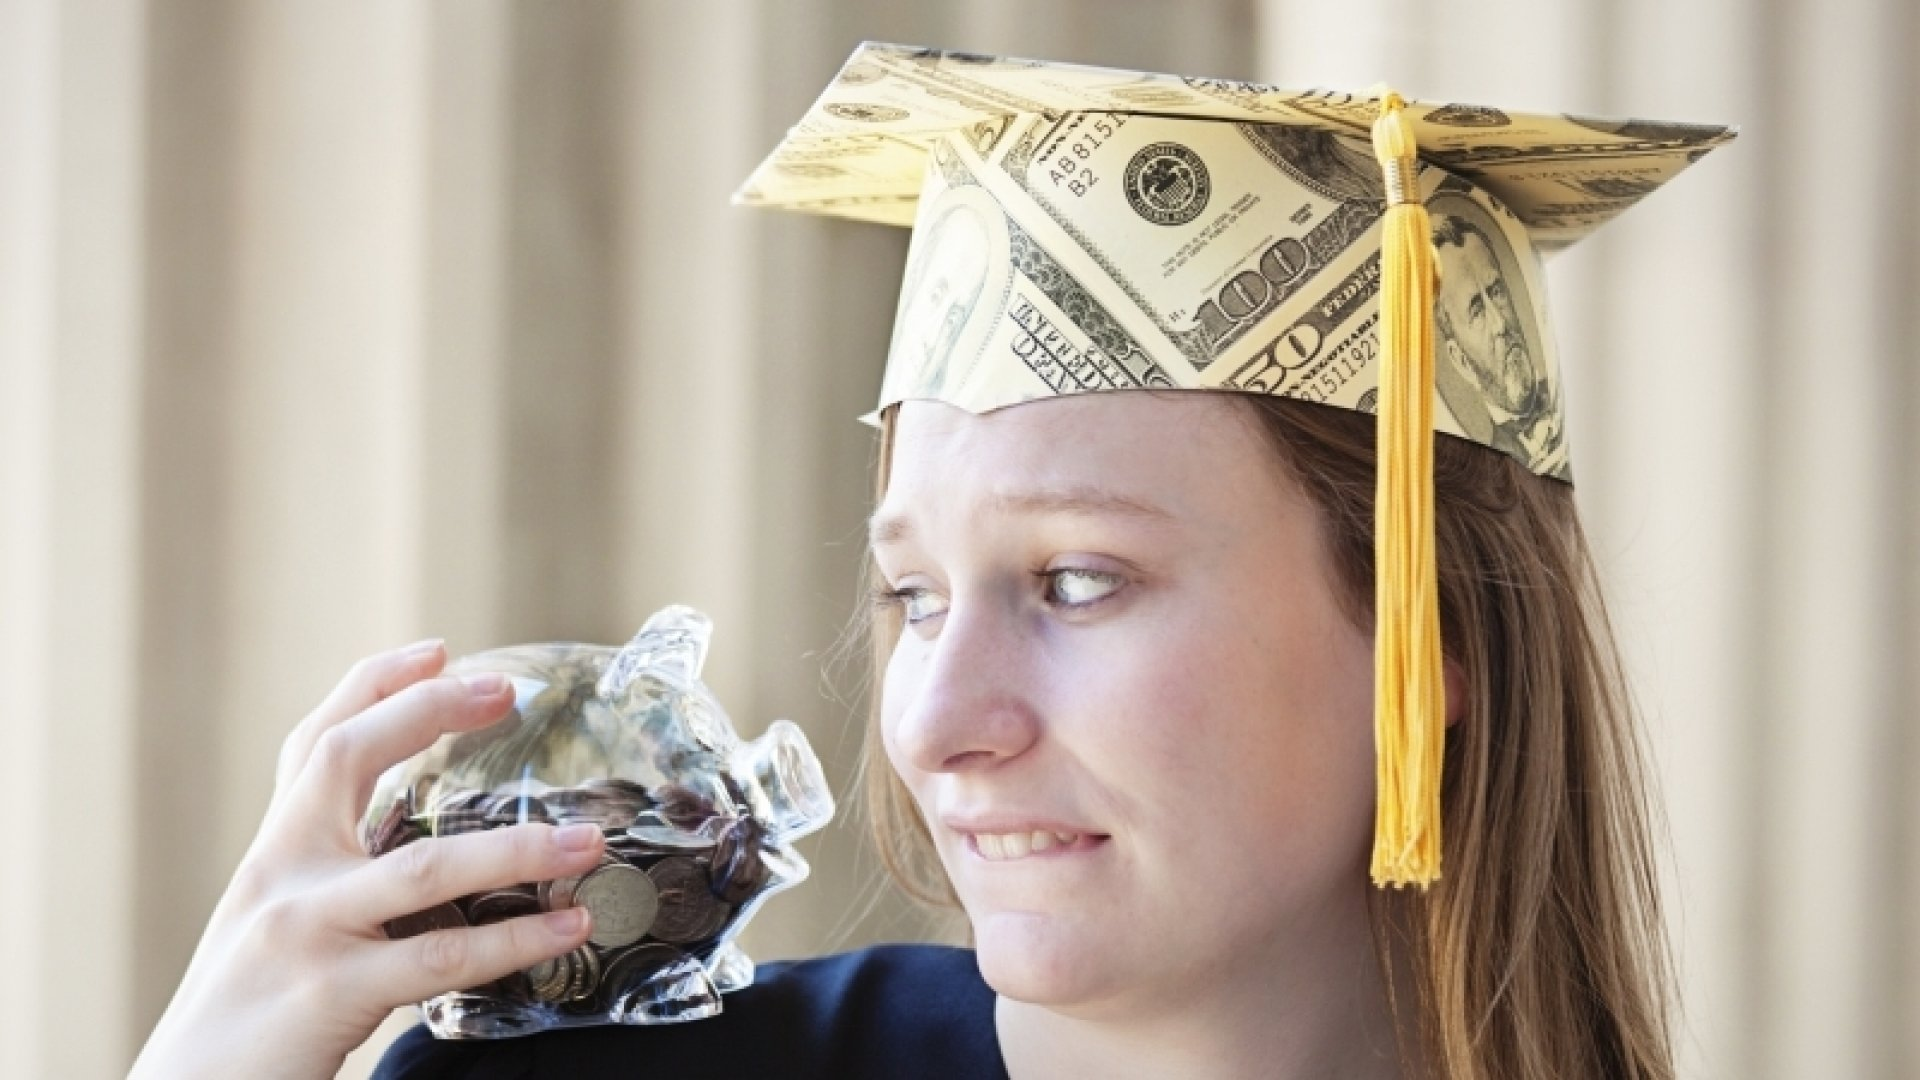 Student Loan Debt: Who Is Helping Us Get Out of It?